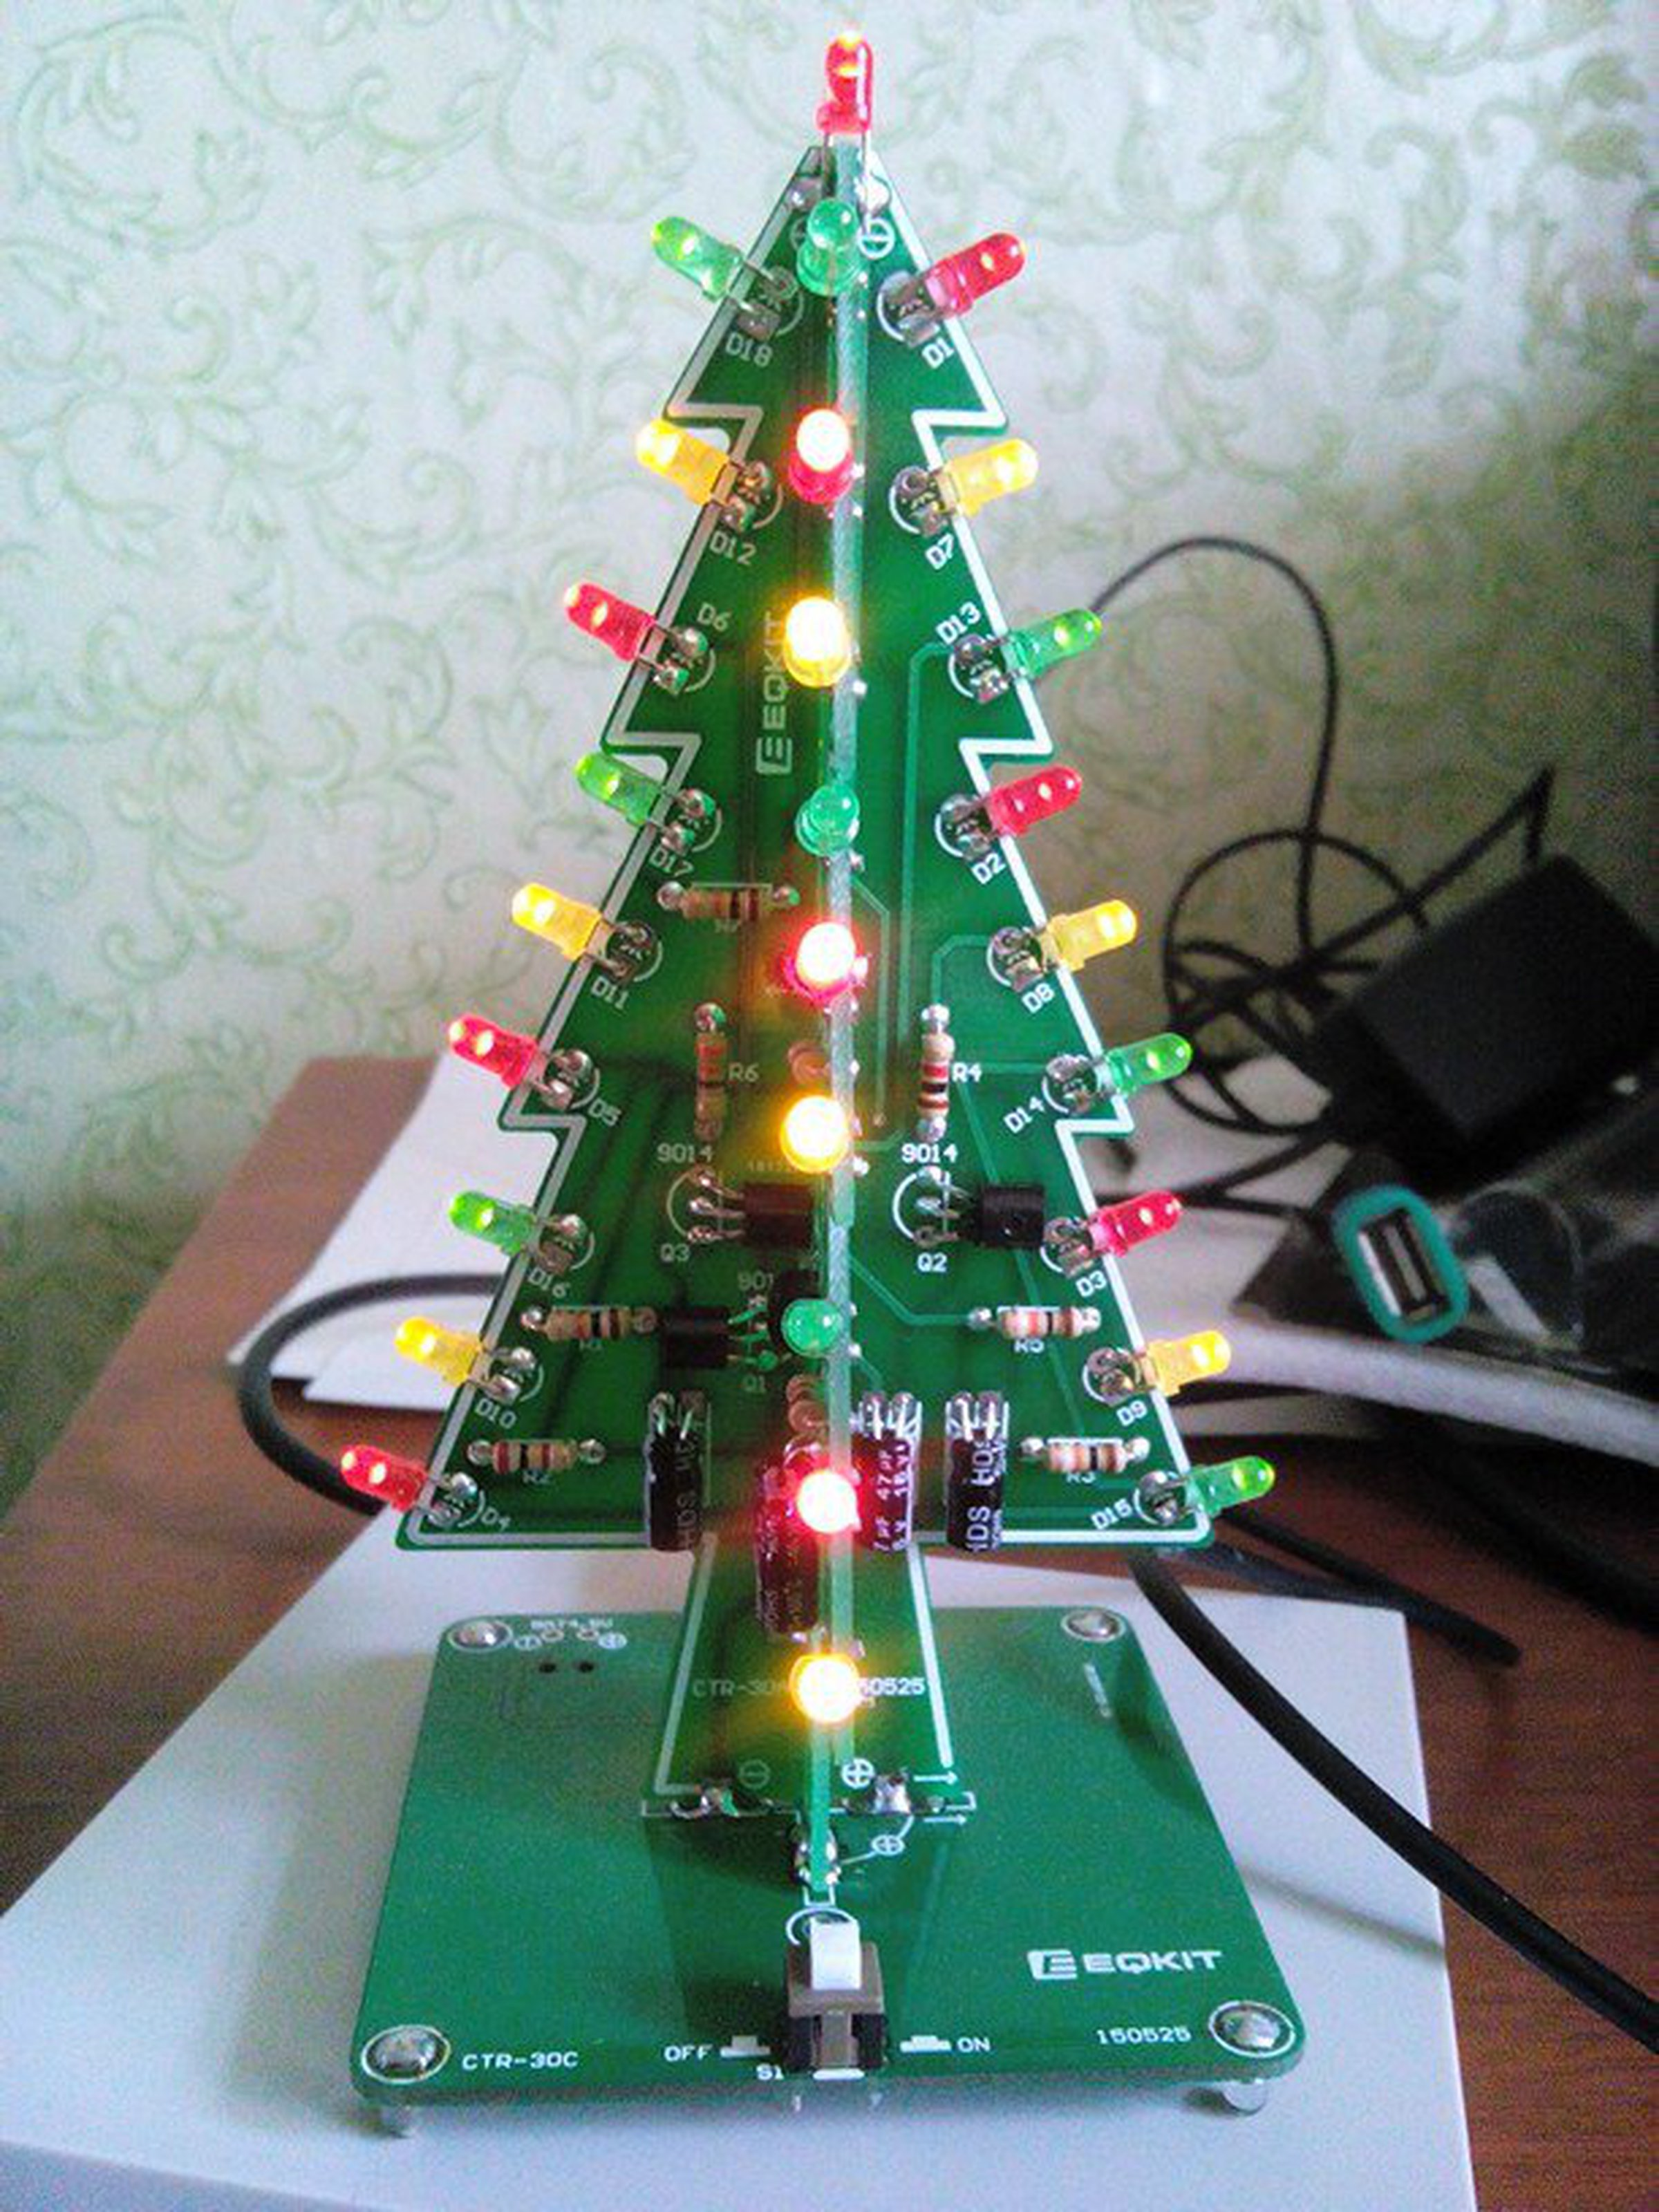 Diy Flashing Led Christmas Tree Circuit Kit7212 From Icstation On Flashers Circuits And Projects 24 2